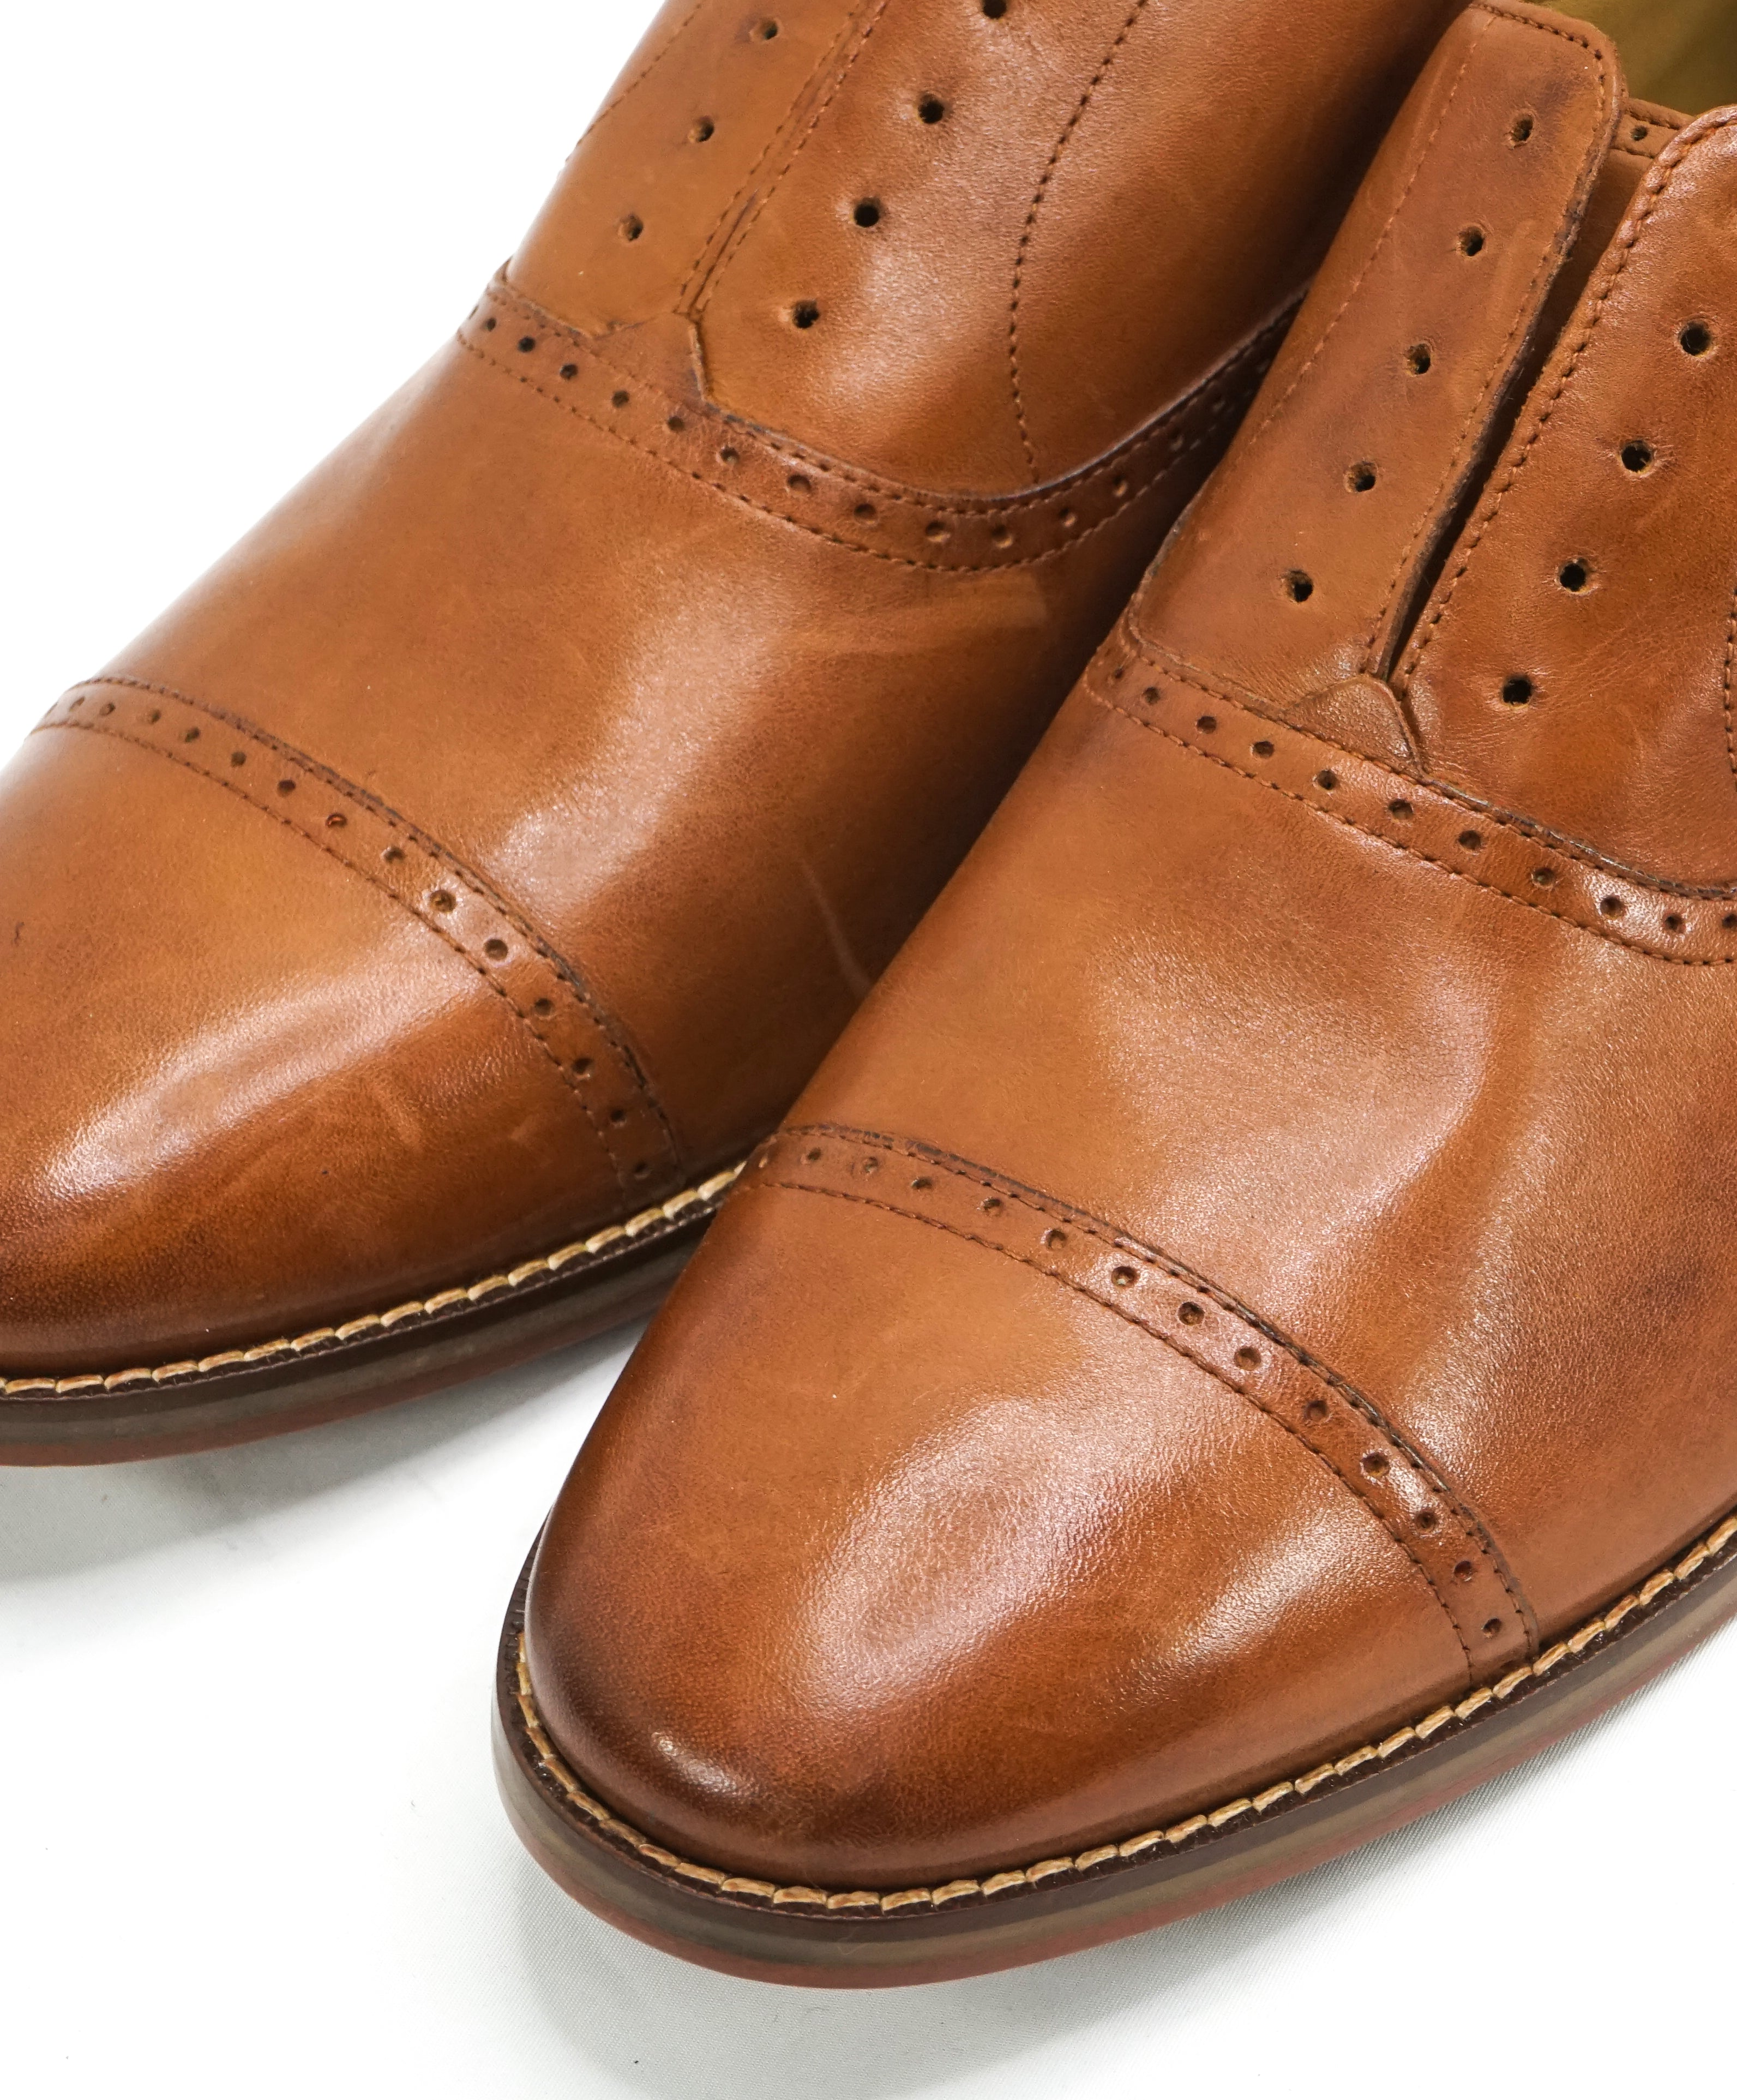 COLE HAAN - Brown Cap Toe Brogue Oxfords Burnished Tips - 10.5